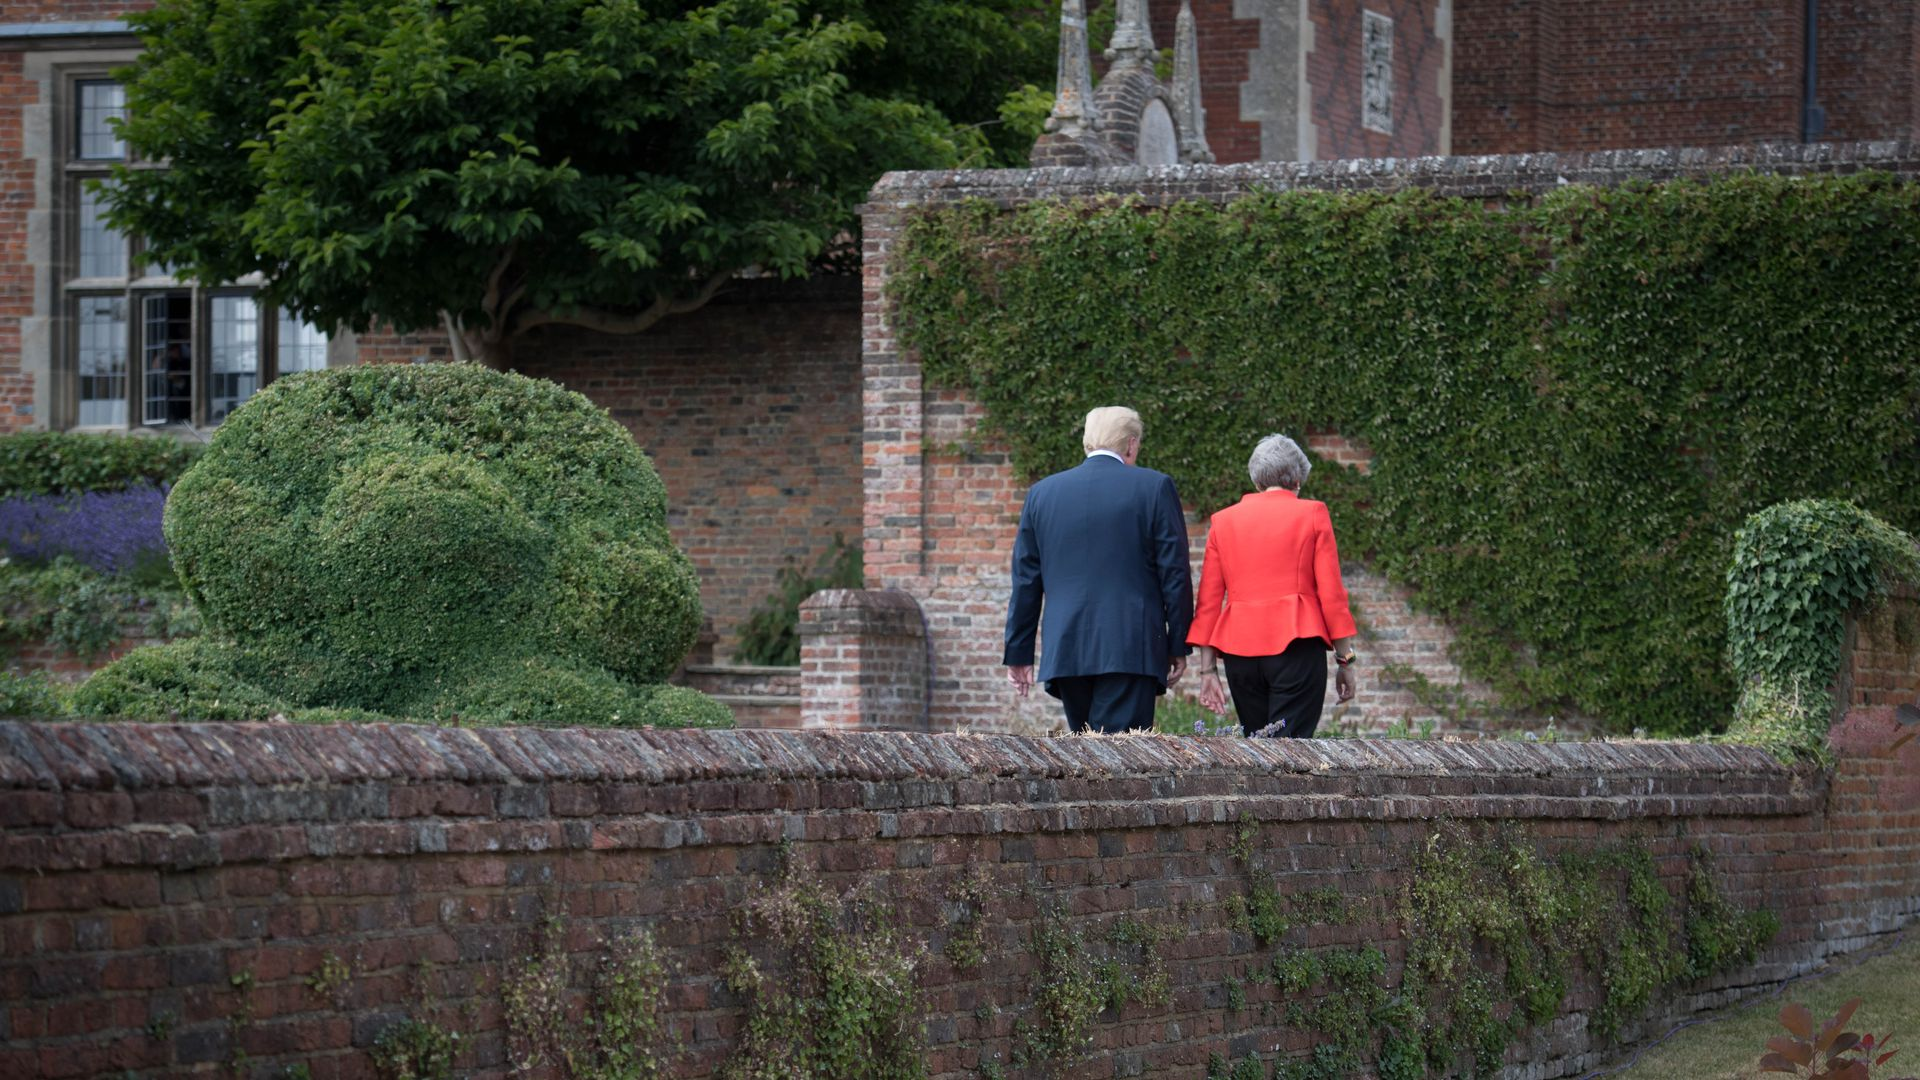 Donald Trump and Theresa May walking together